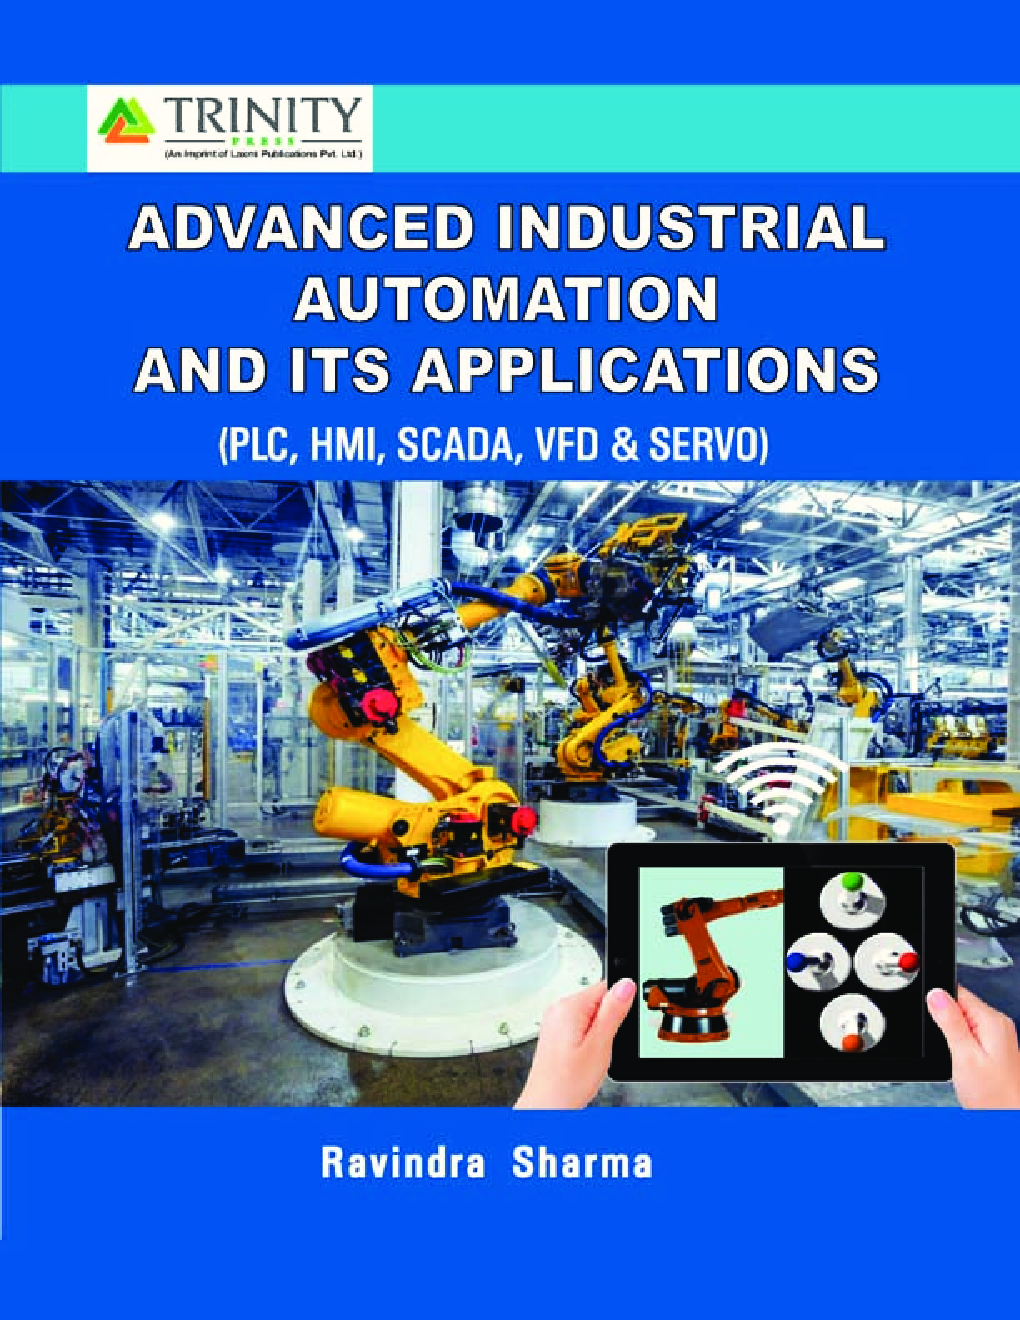 Advanced Industrial Automation And Its Applications - Page 1